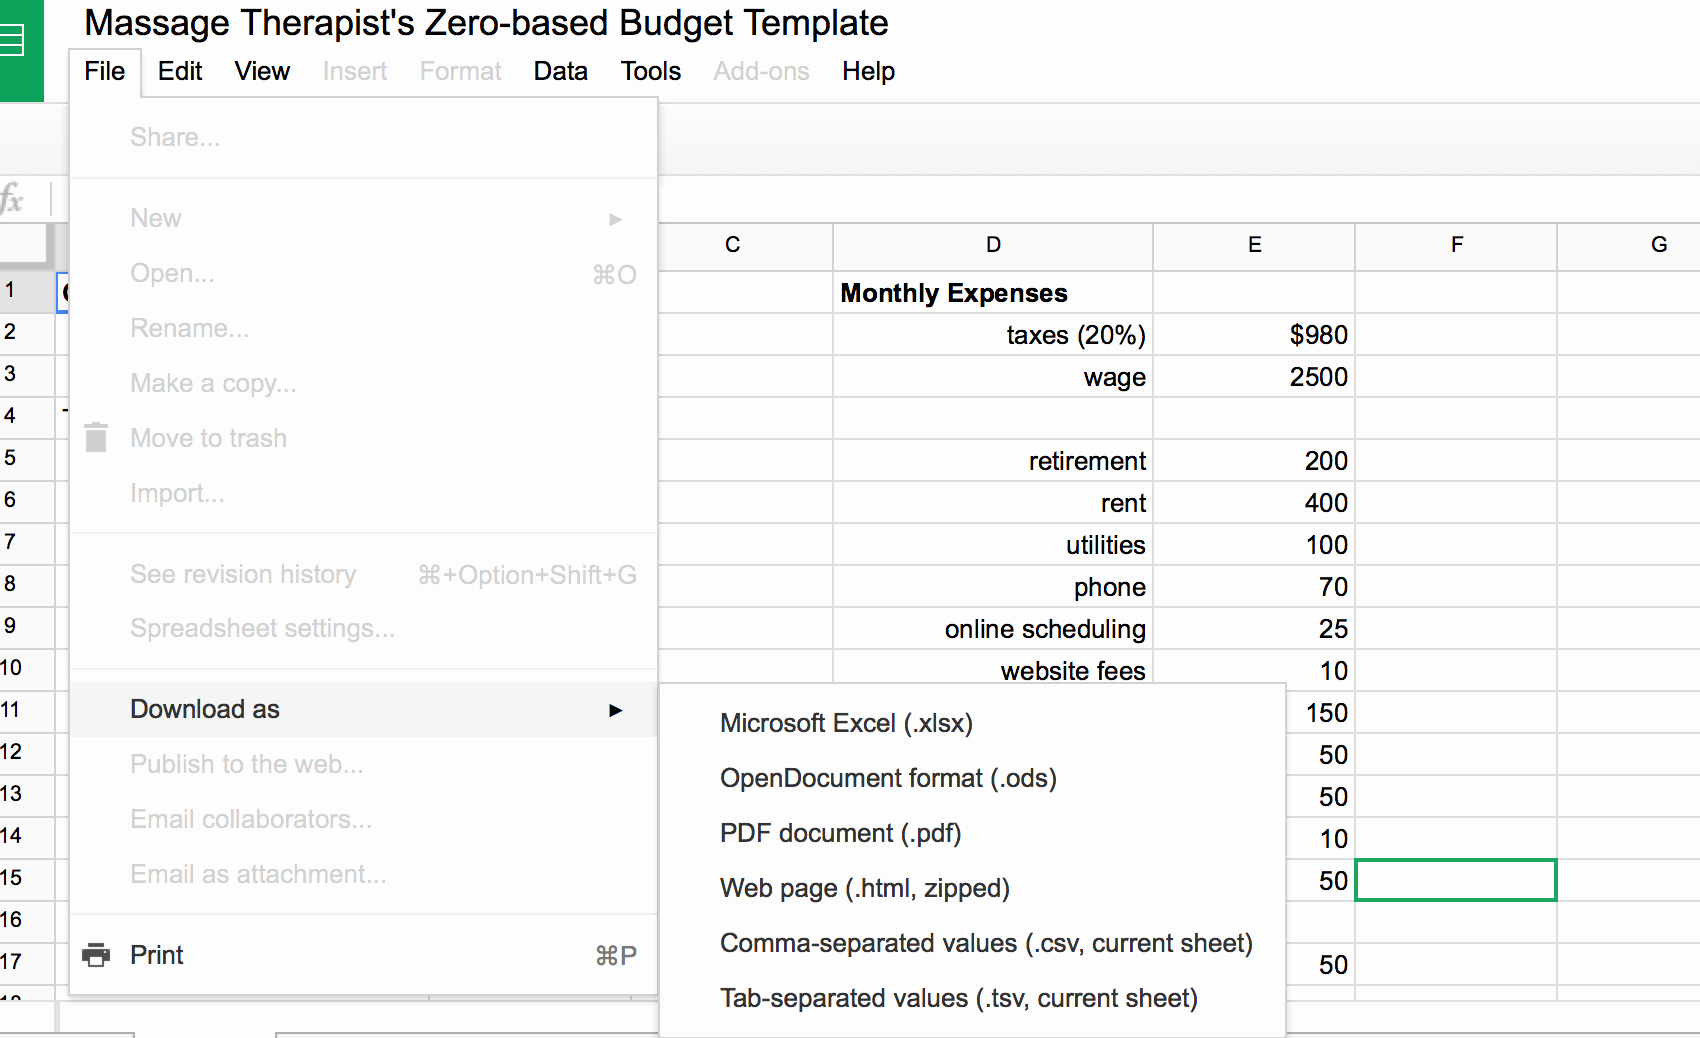 Zero Based Budgeting Template Lovely How to Operate Your Massage Practice On A Zero Based